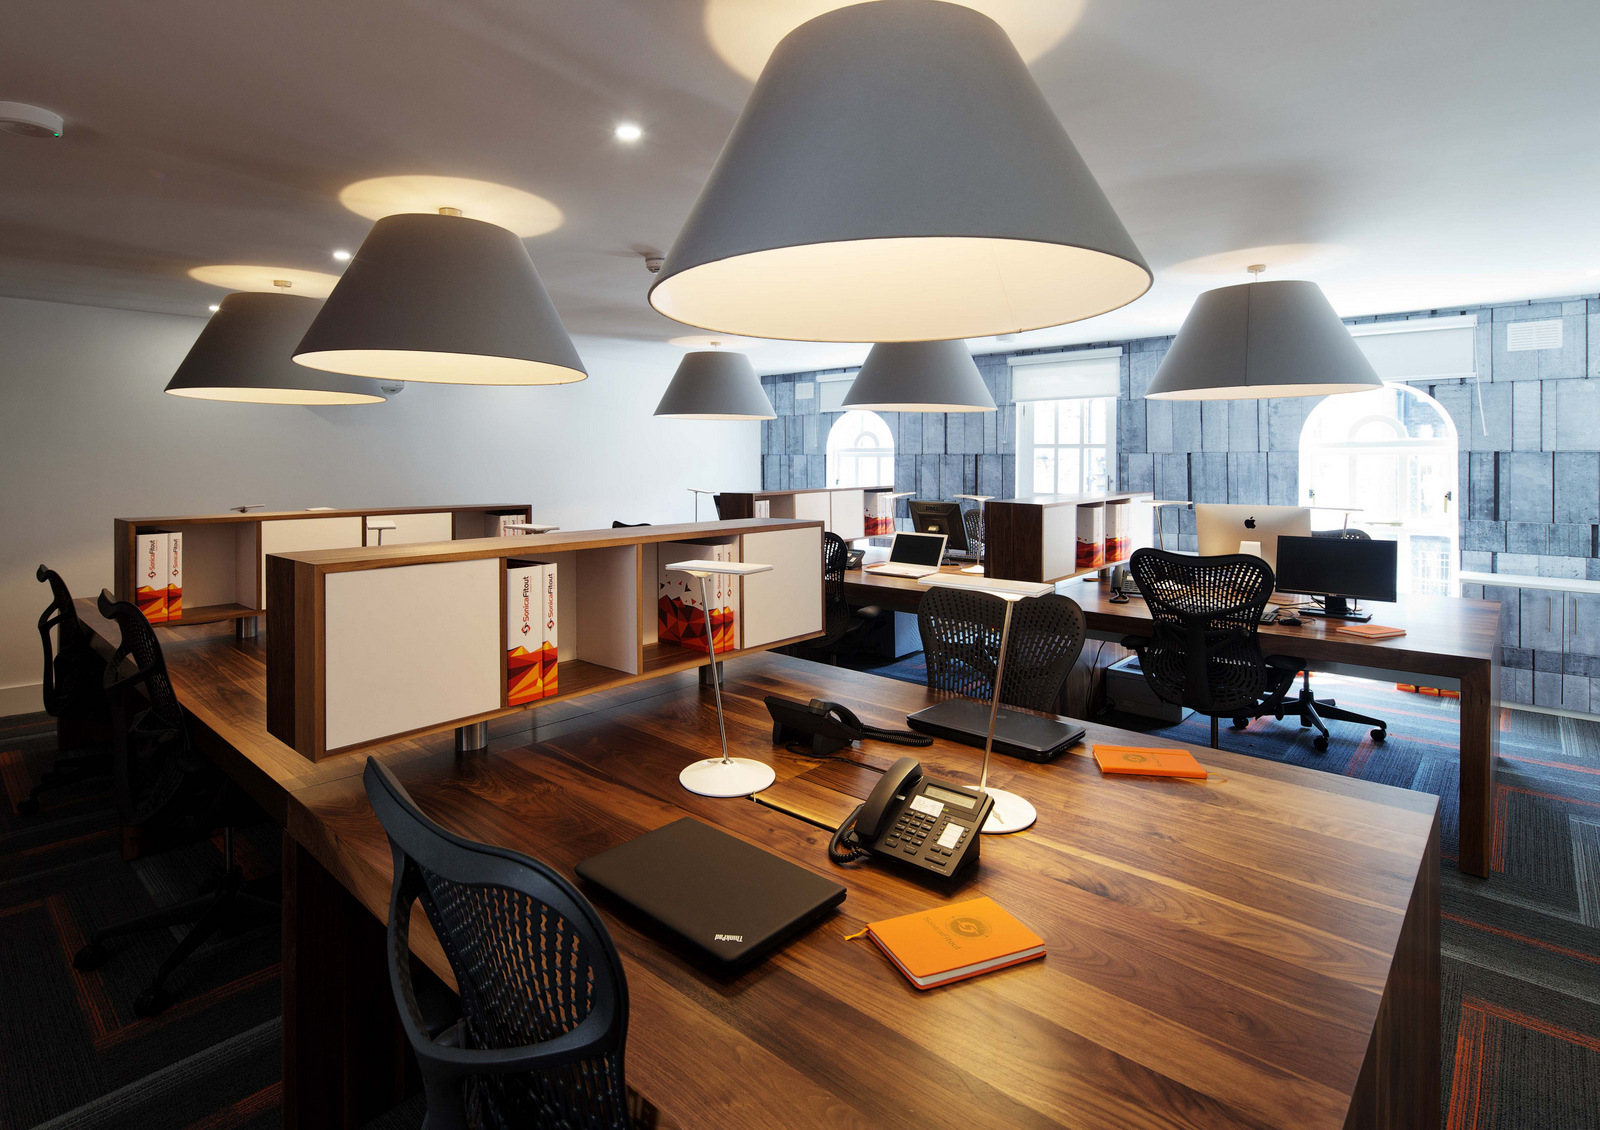 open office ceiling decoration idea. Dark Wood Perfectly Balances Out The Industrial Details And Furniture. Choosing Right Kind Of Lamp, It Can Also Work As Room Decoration. Open Office Ceiling Decoration Idea E